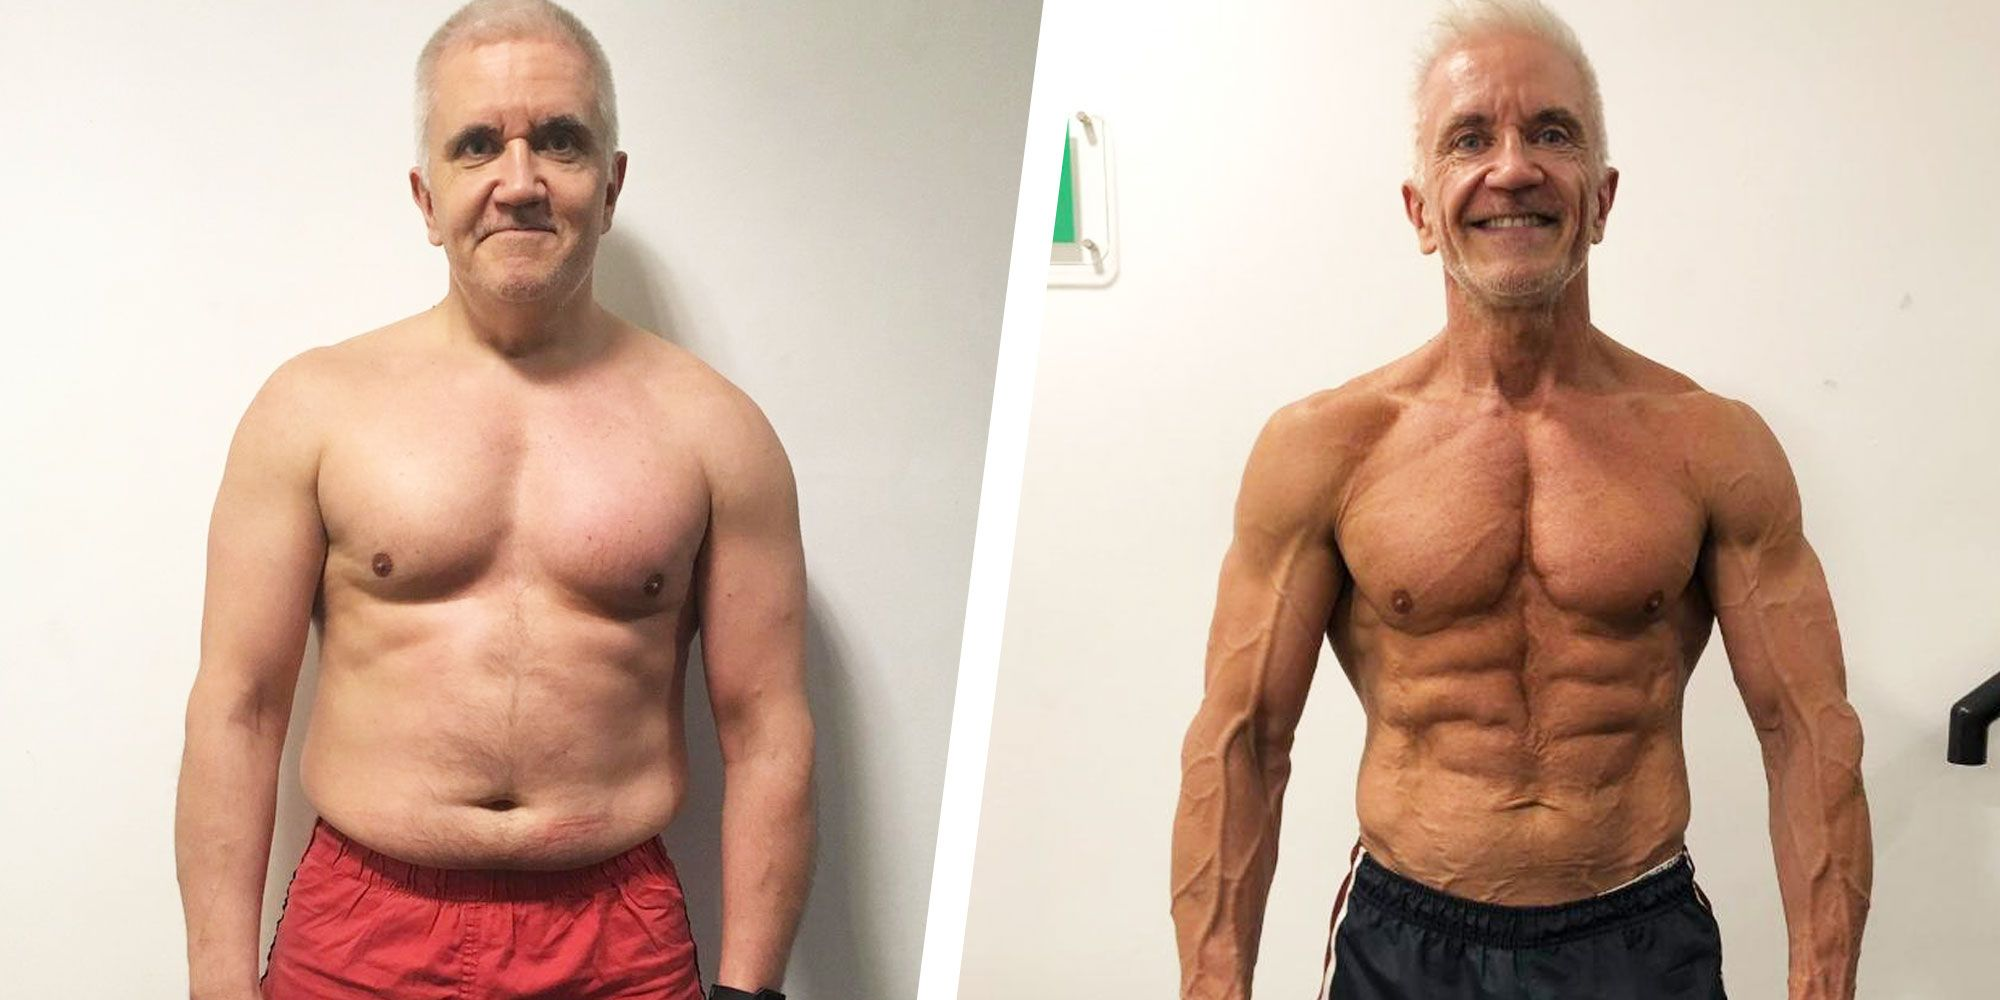 This Guy Went from Being Out of Shape to Competing in Bodybuilding Competitions